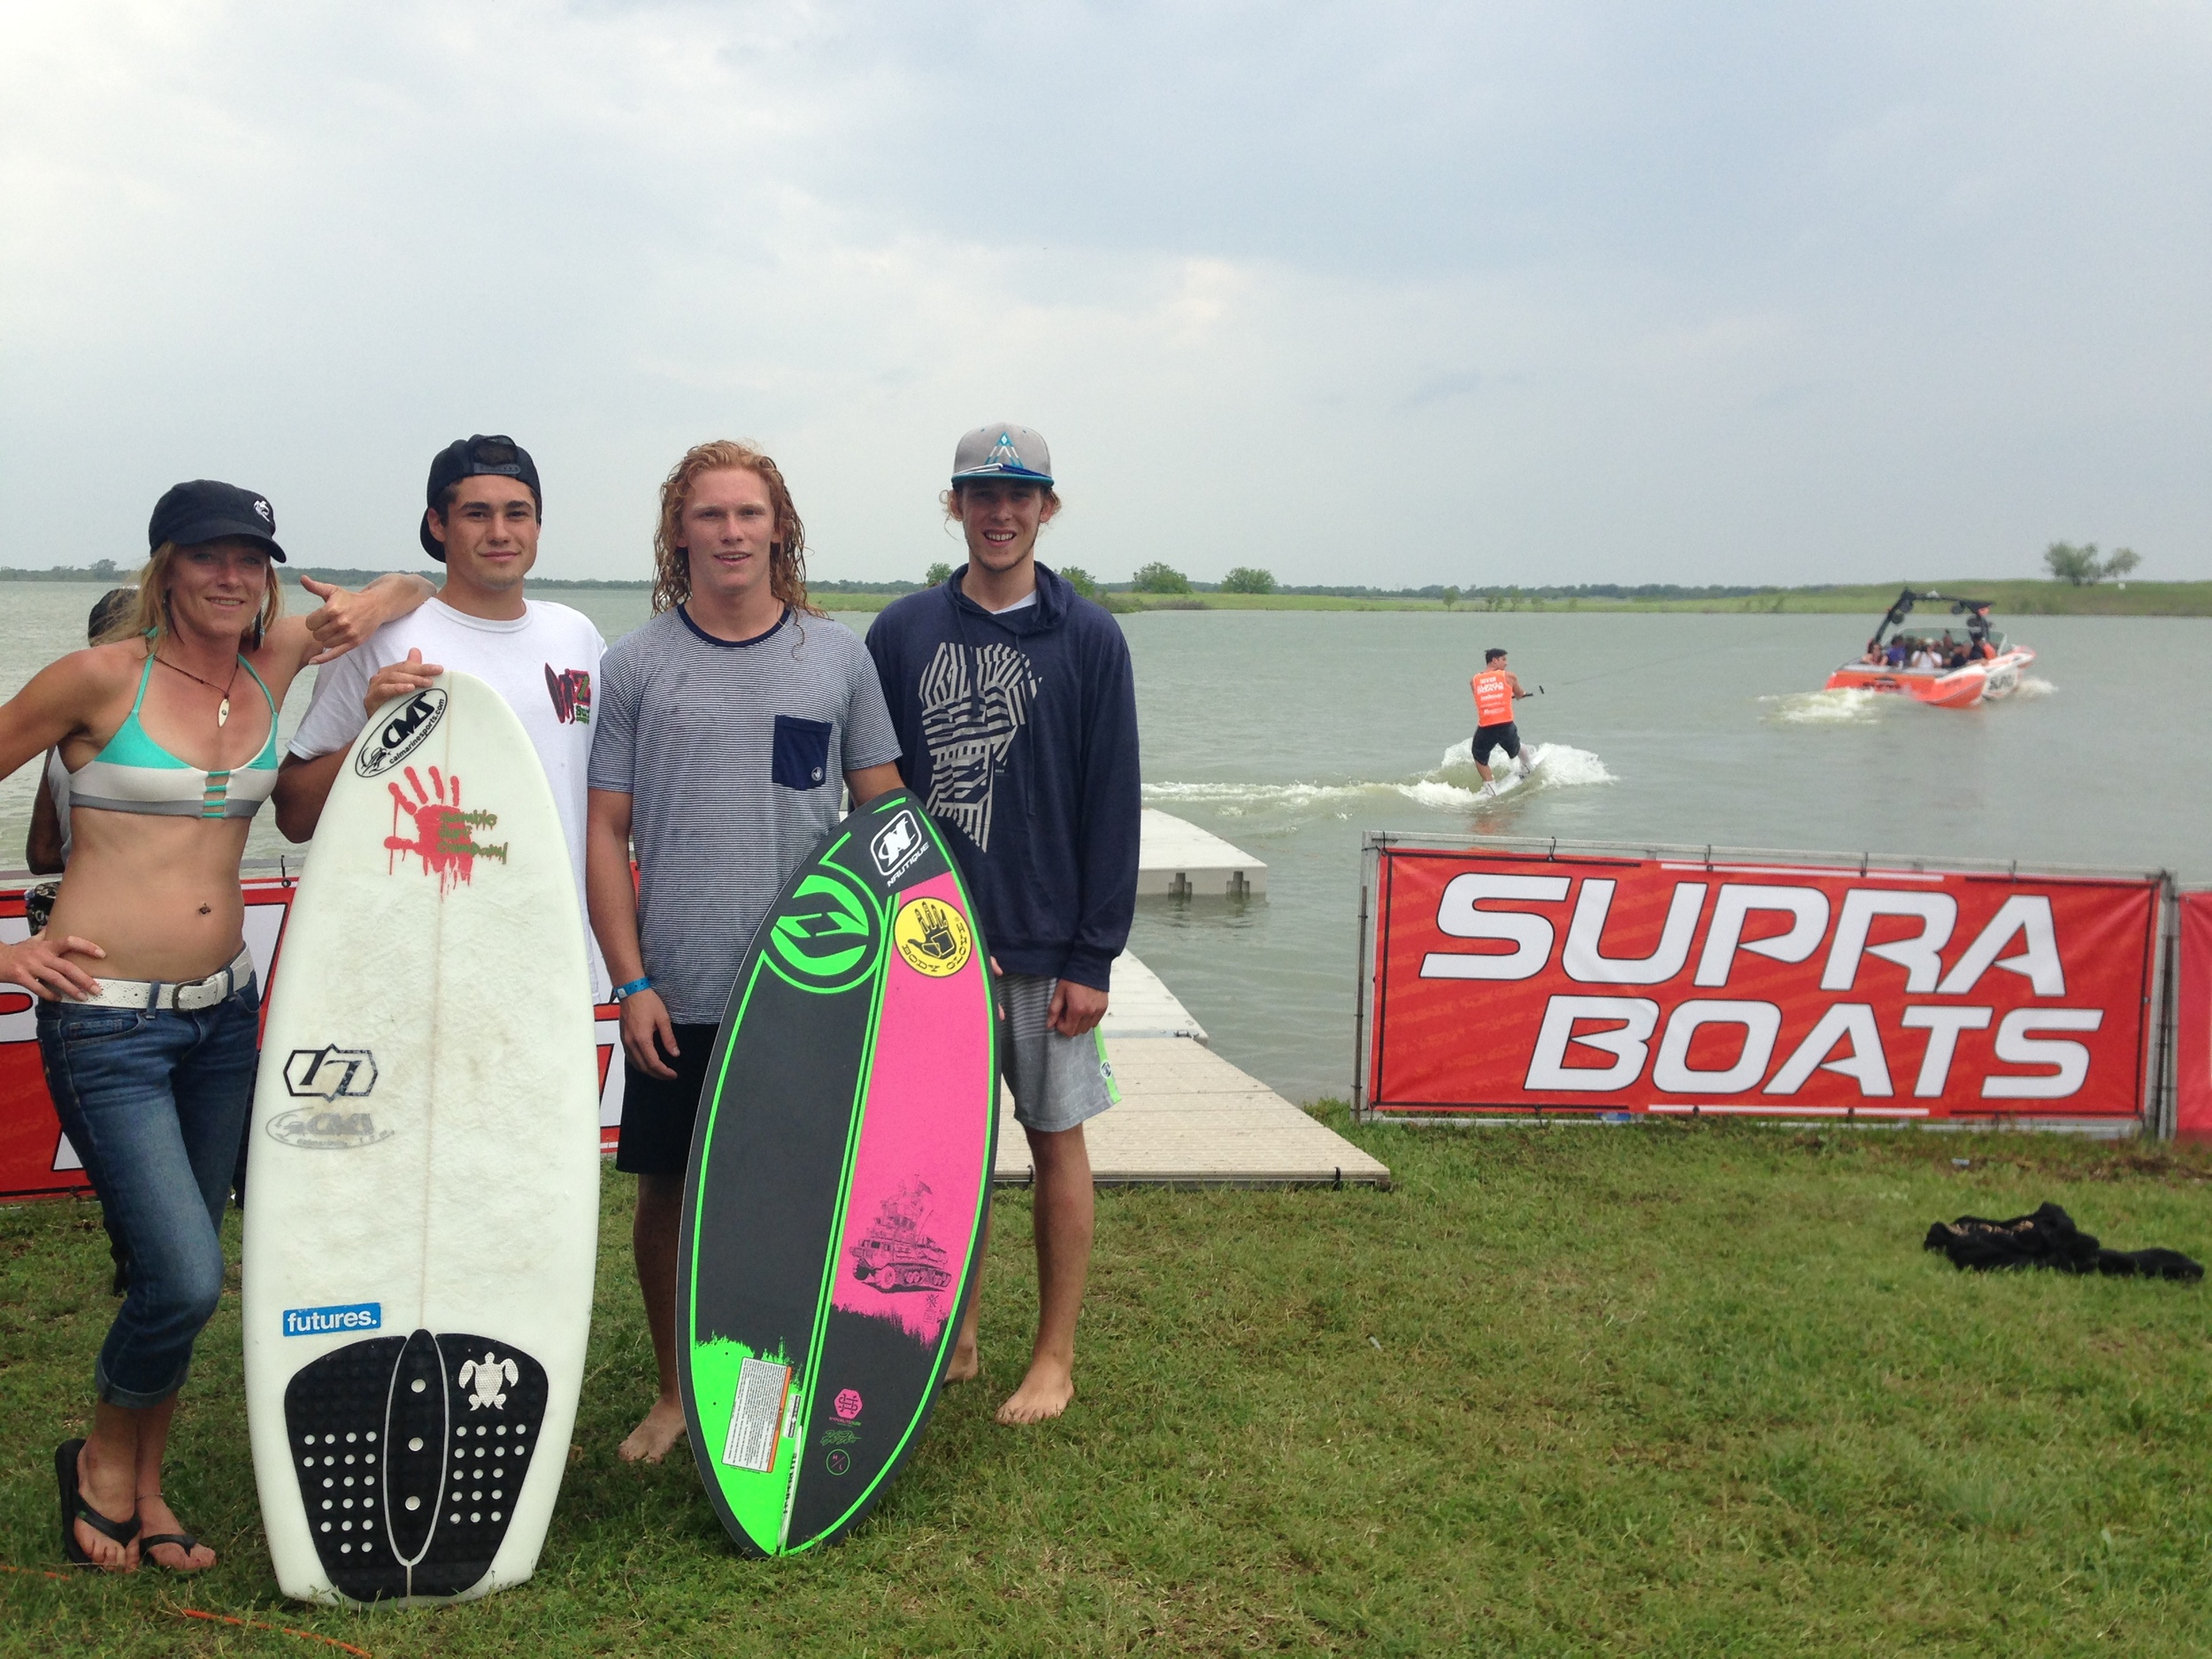 Wake surfers Caroline Villenueve, Chris Wolter, Noah Flegel and Aaron Witherell